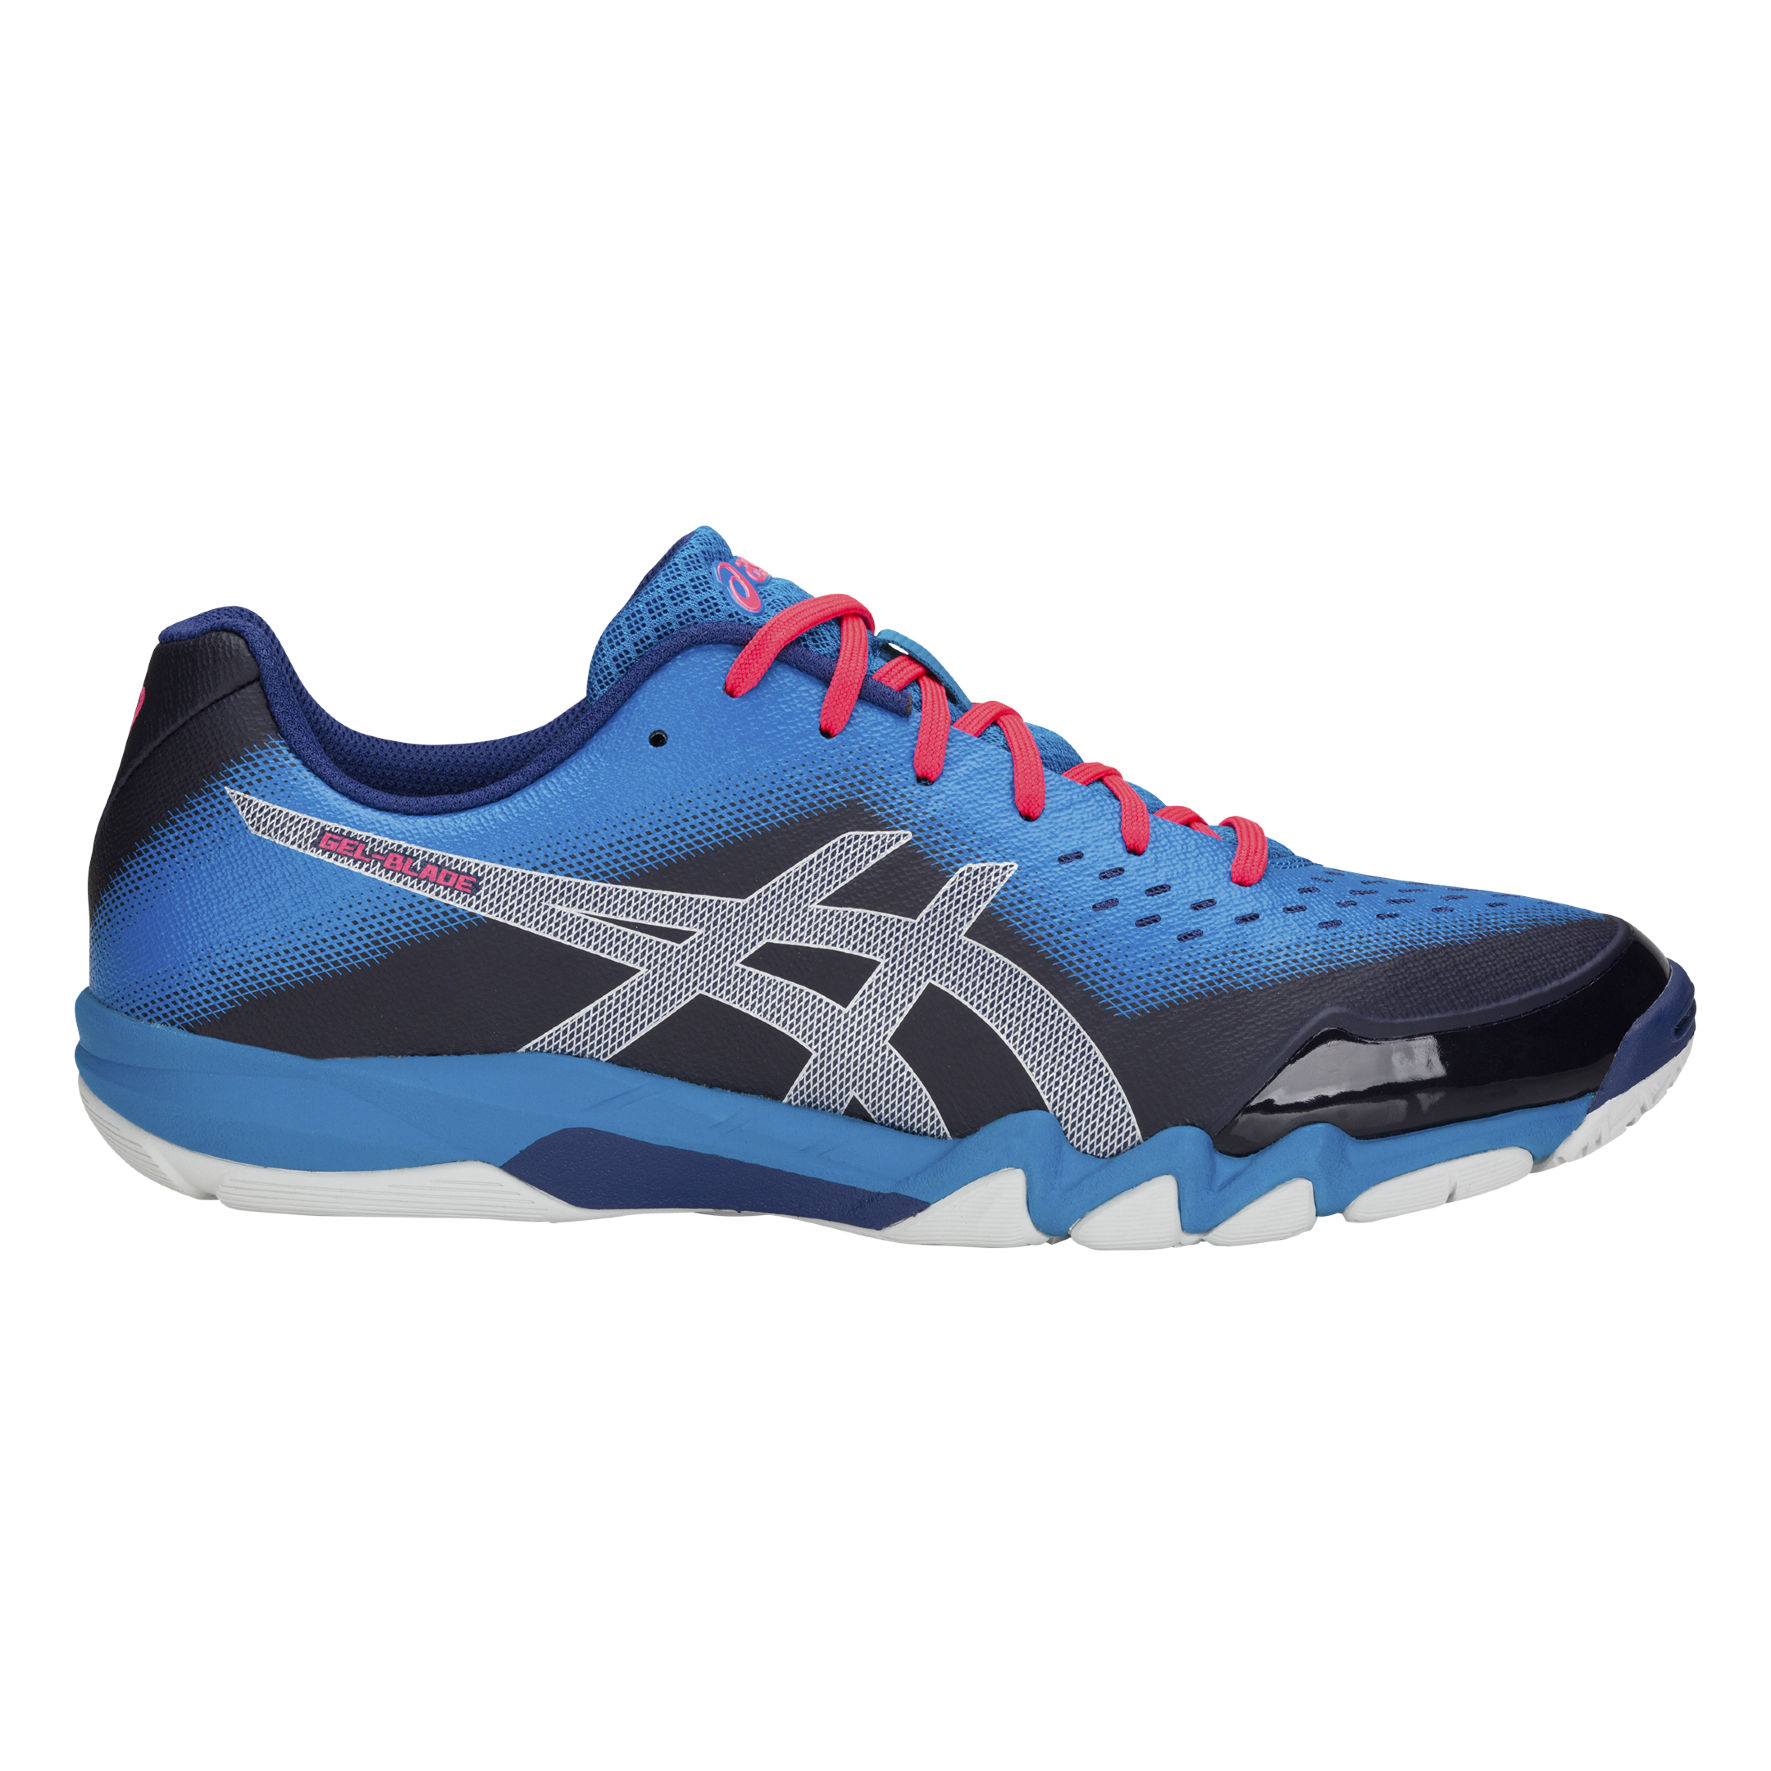 Asics Gel Blade 6 in Blau